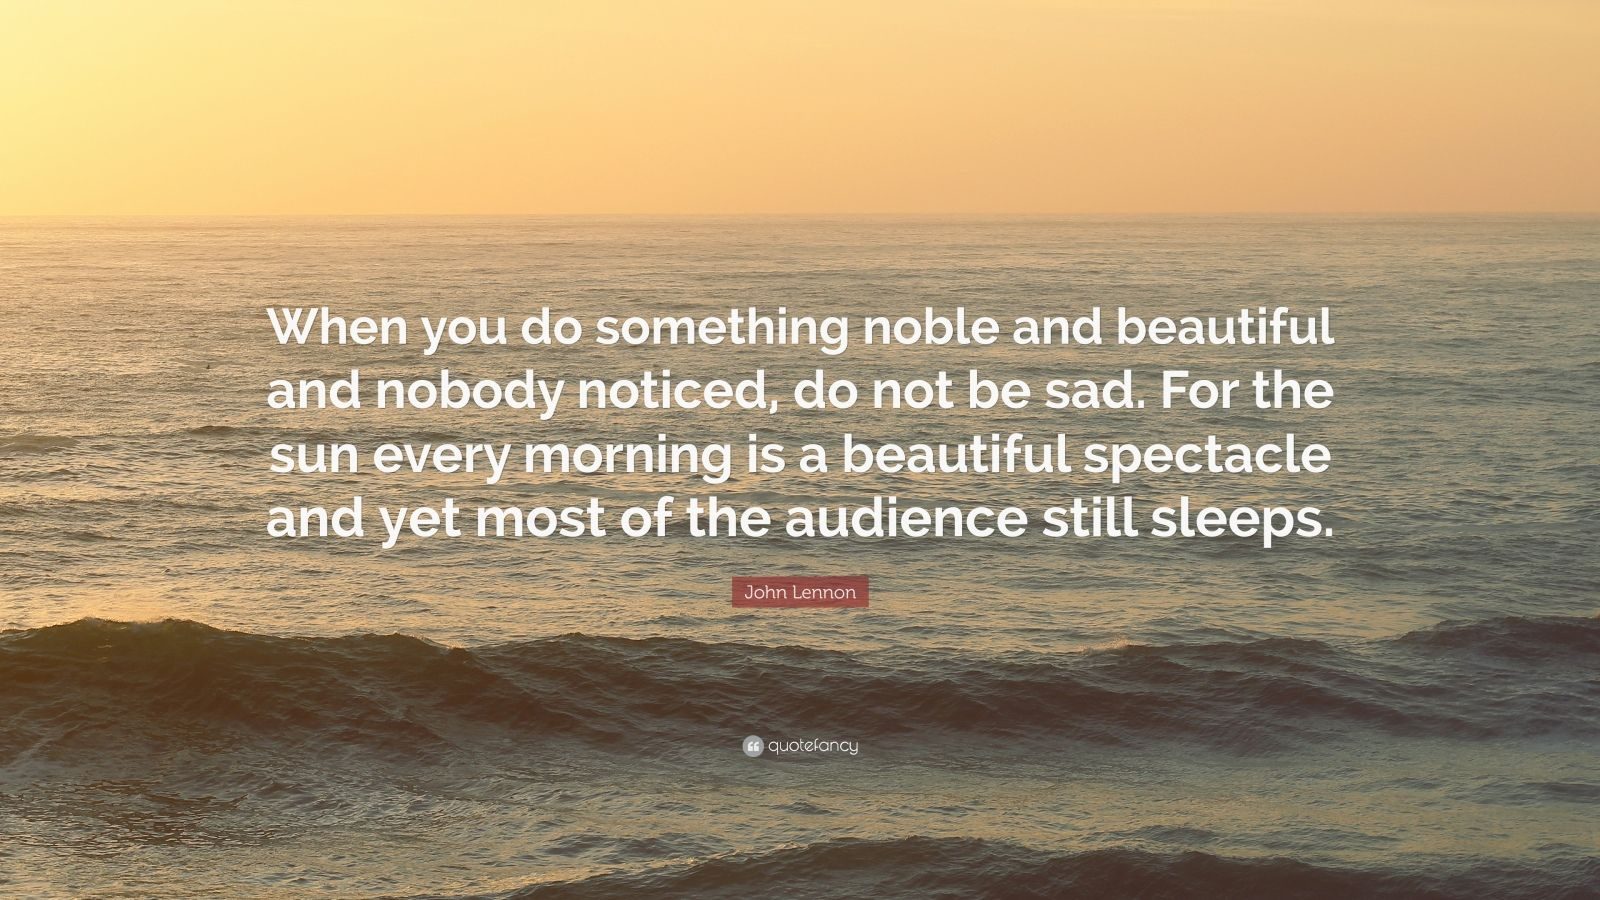 "John Lennon Quote: ""When you do something noble and beautiful and nobody noticed, do not be sad. For the sun every morning is a beautiful spectacle and yet most of the audience still sleeps."""